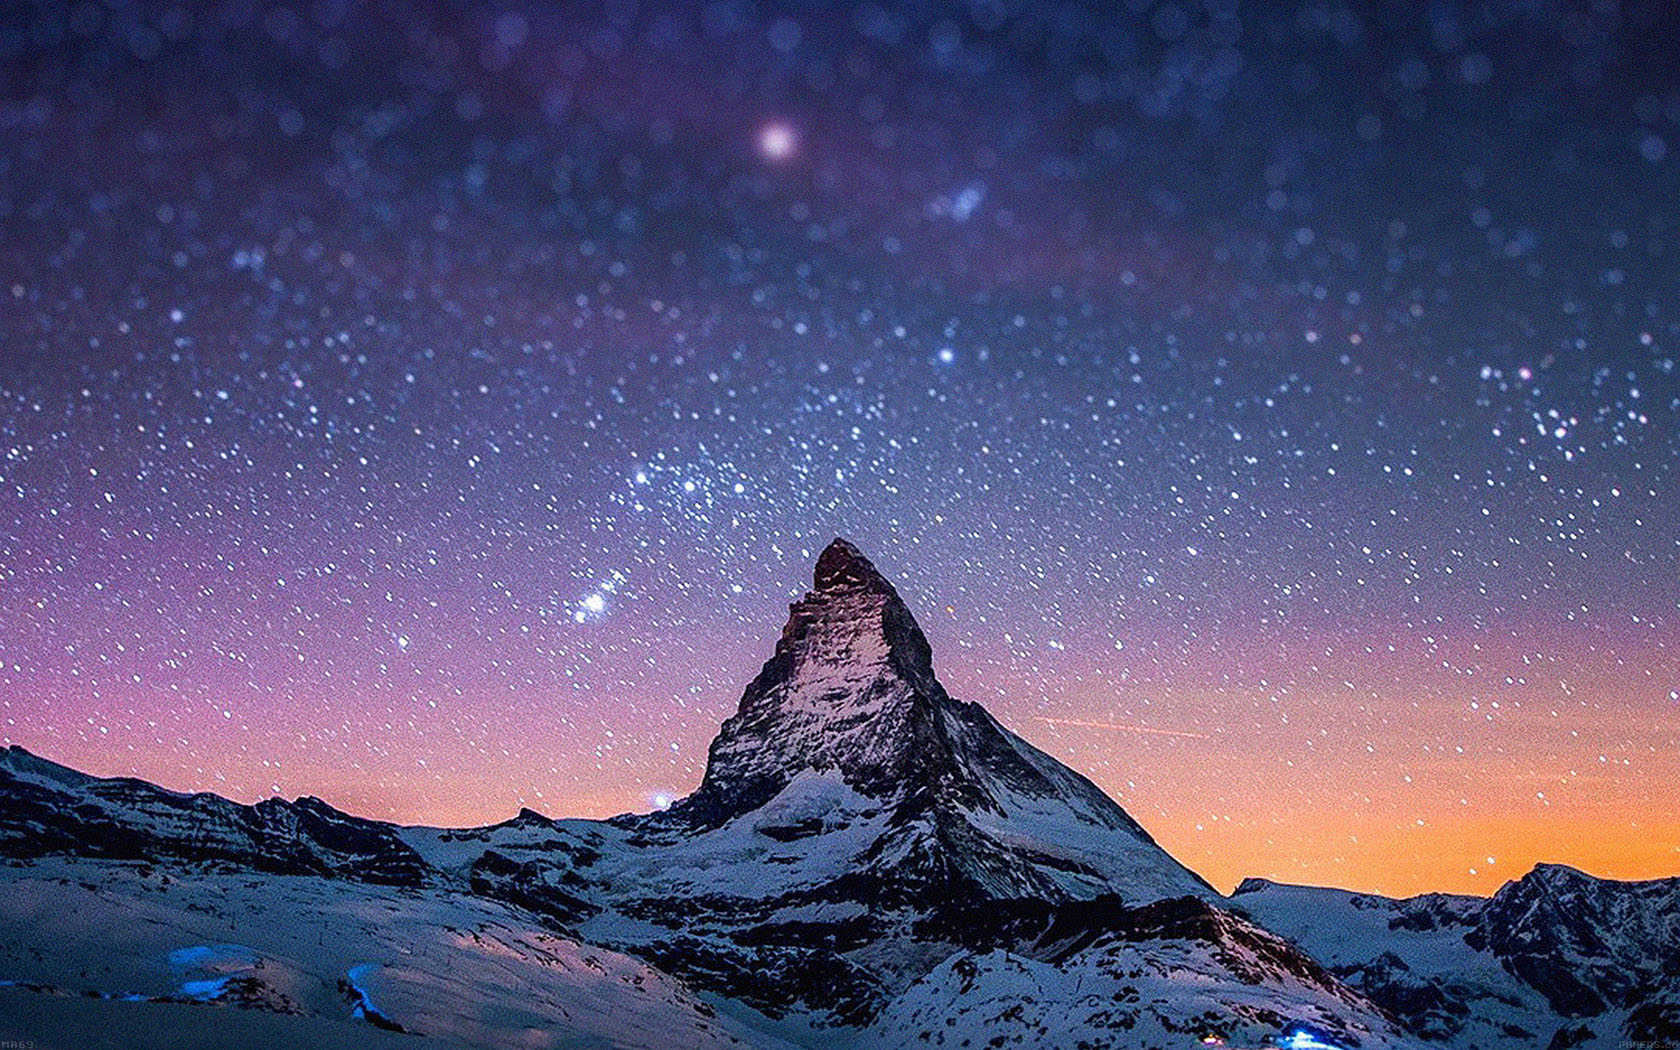 Dark Wallpapers For Iphone X Ma69 Night Stars Over Moutain Nature Papers Co